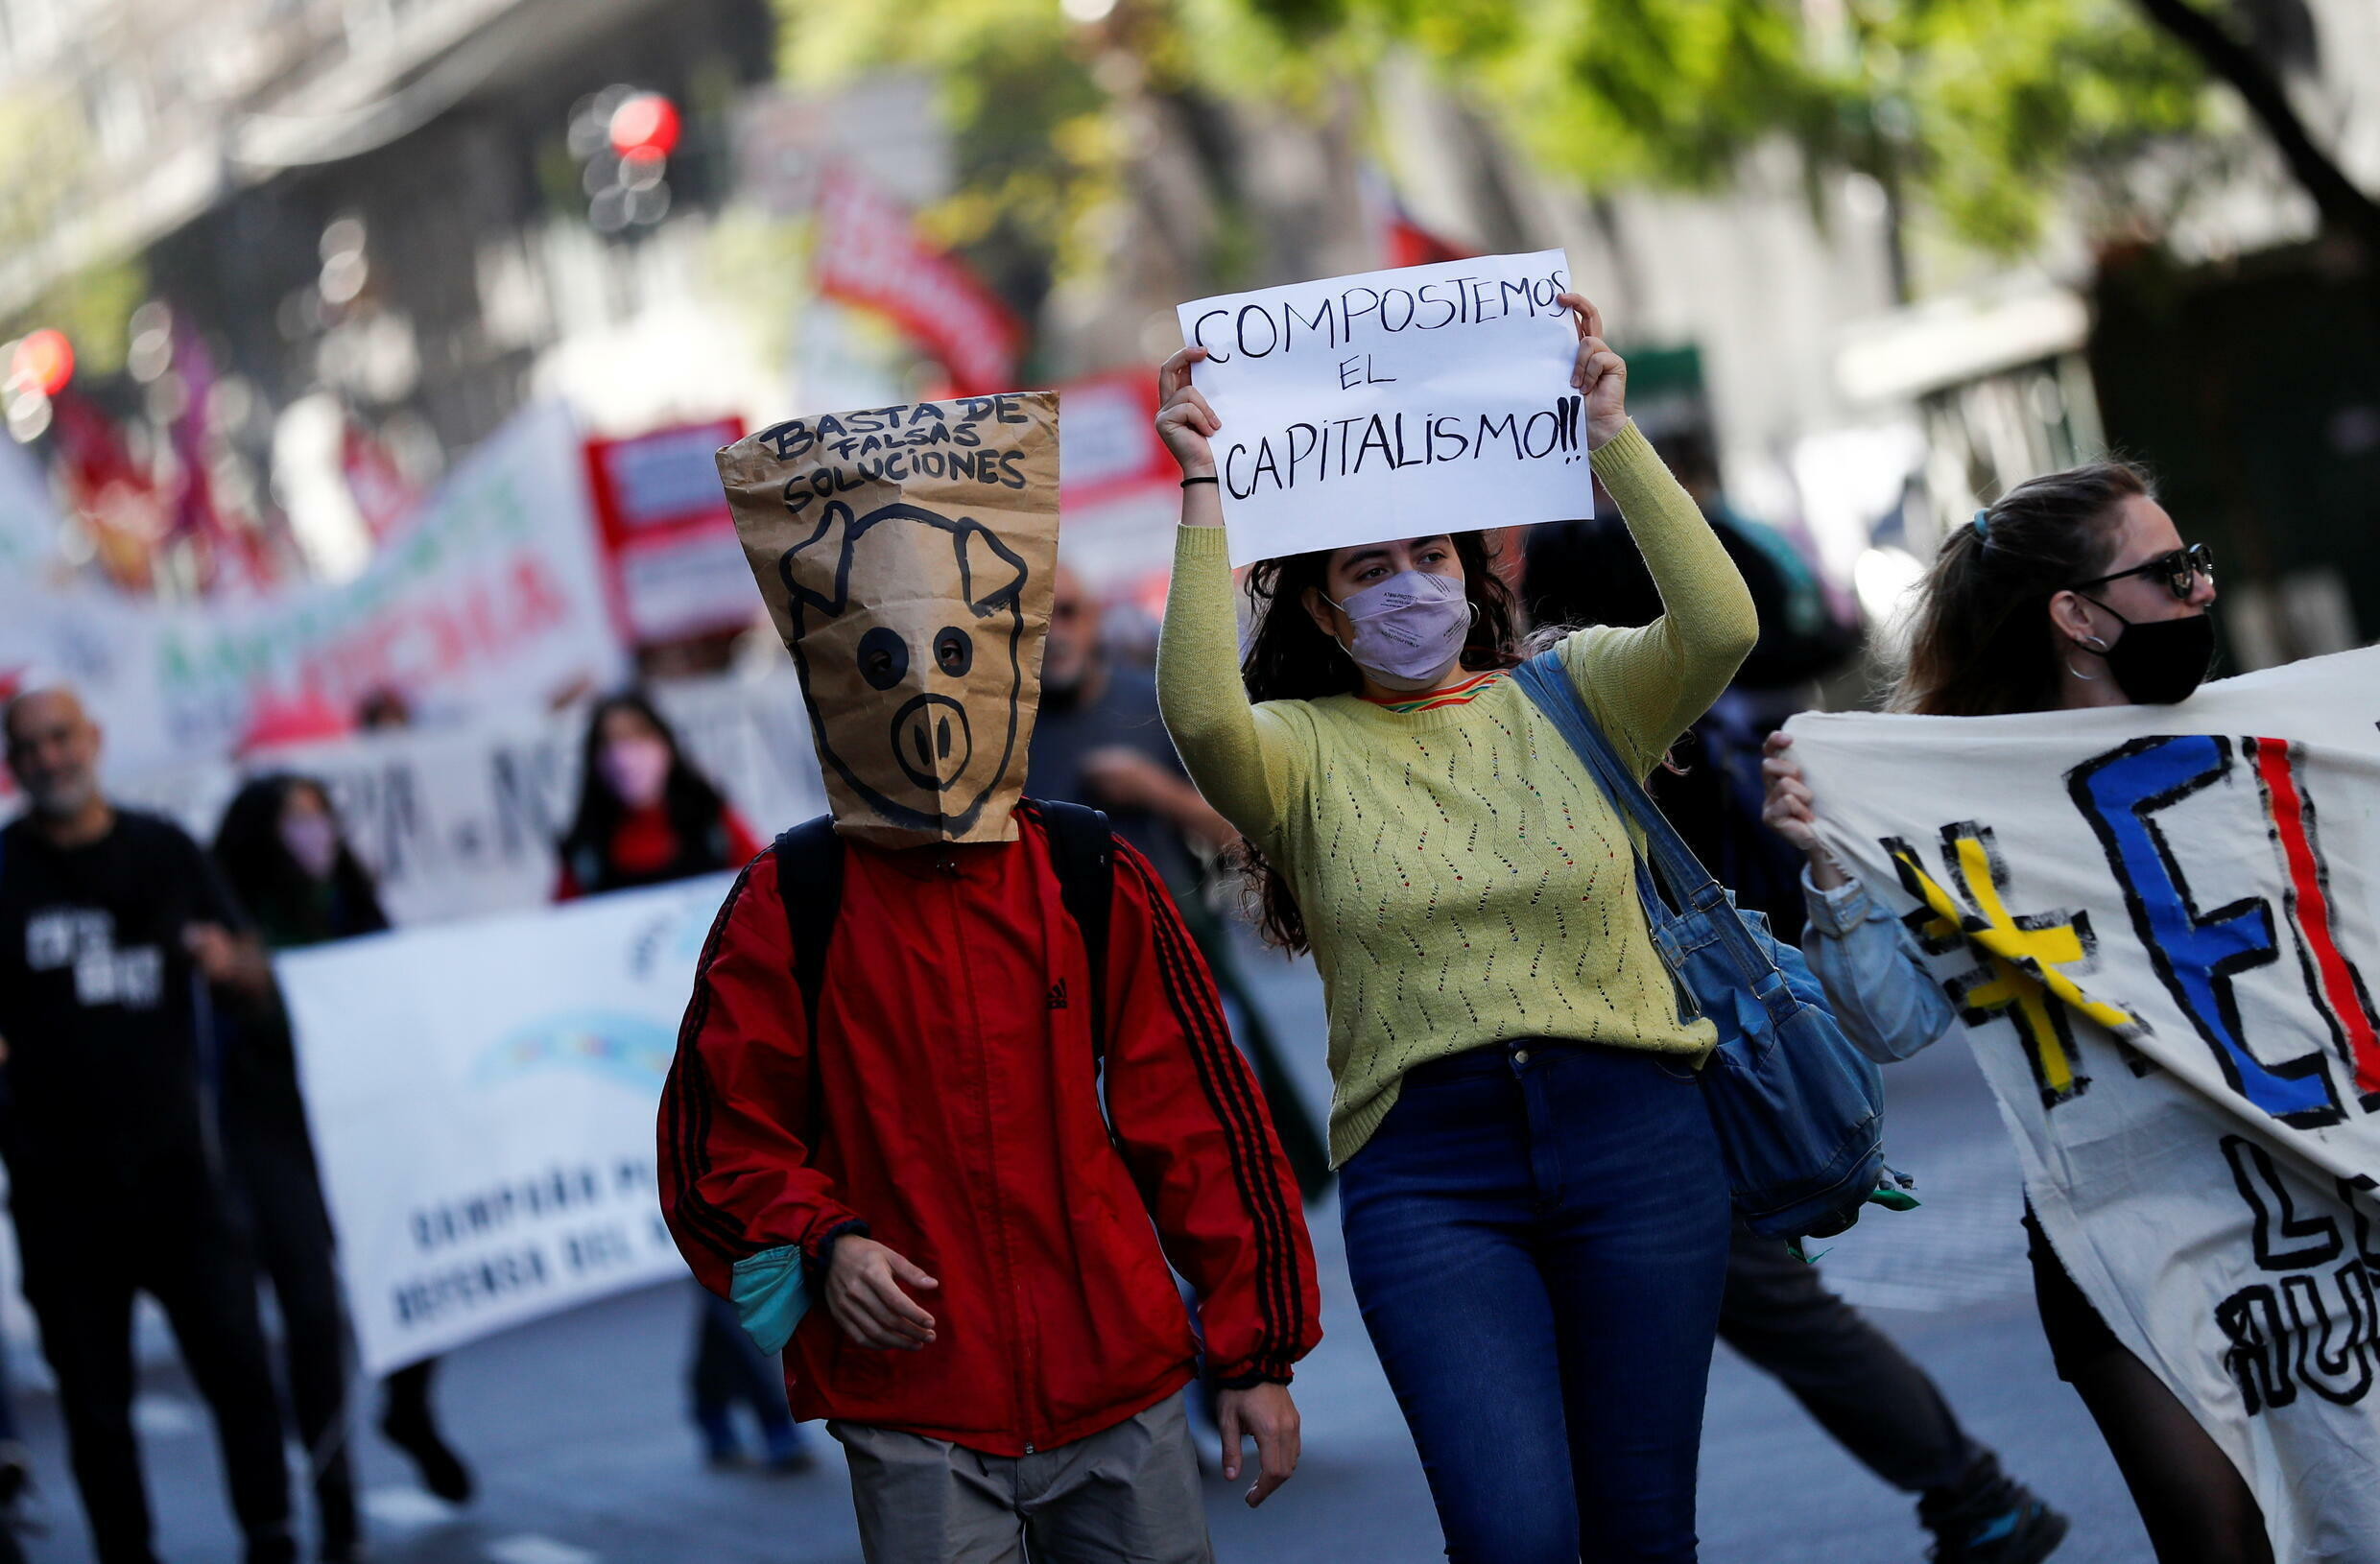 Fridays for Future Buenos Aires